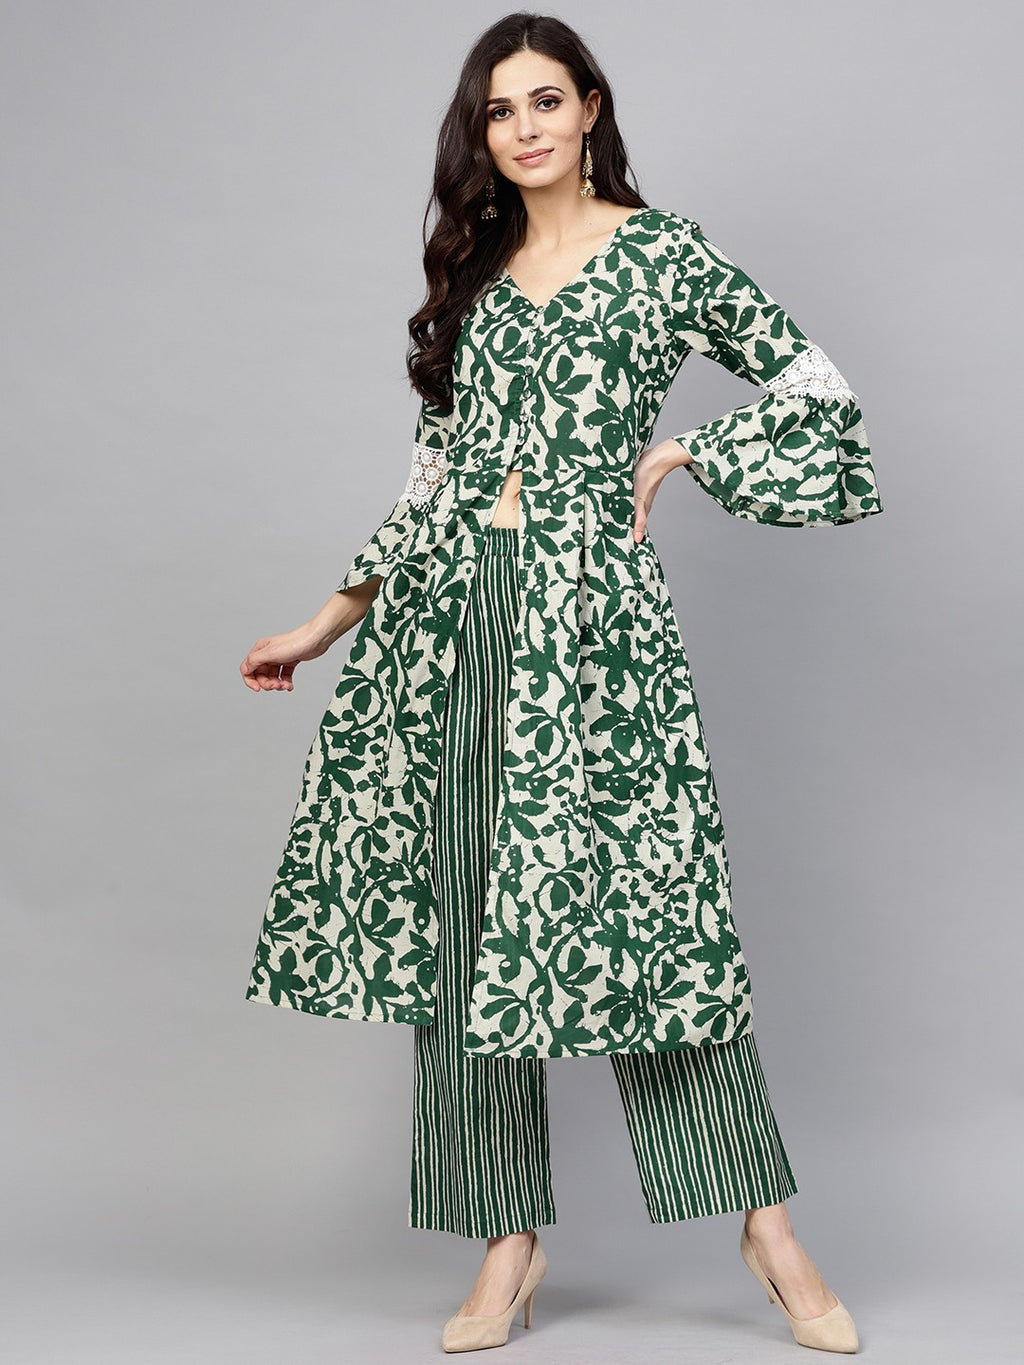 Green & White Floral Printed A-Line Kurta With Palazzo Set (Fully Stitched) | Znx4ever.com